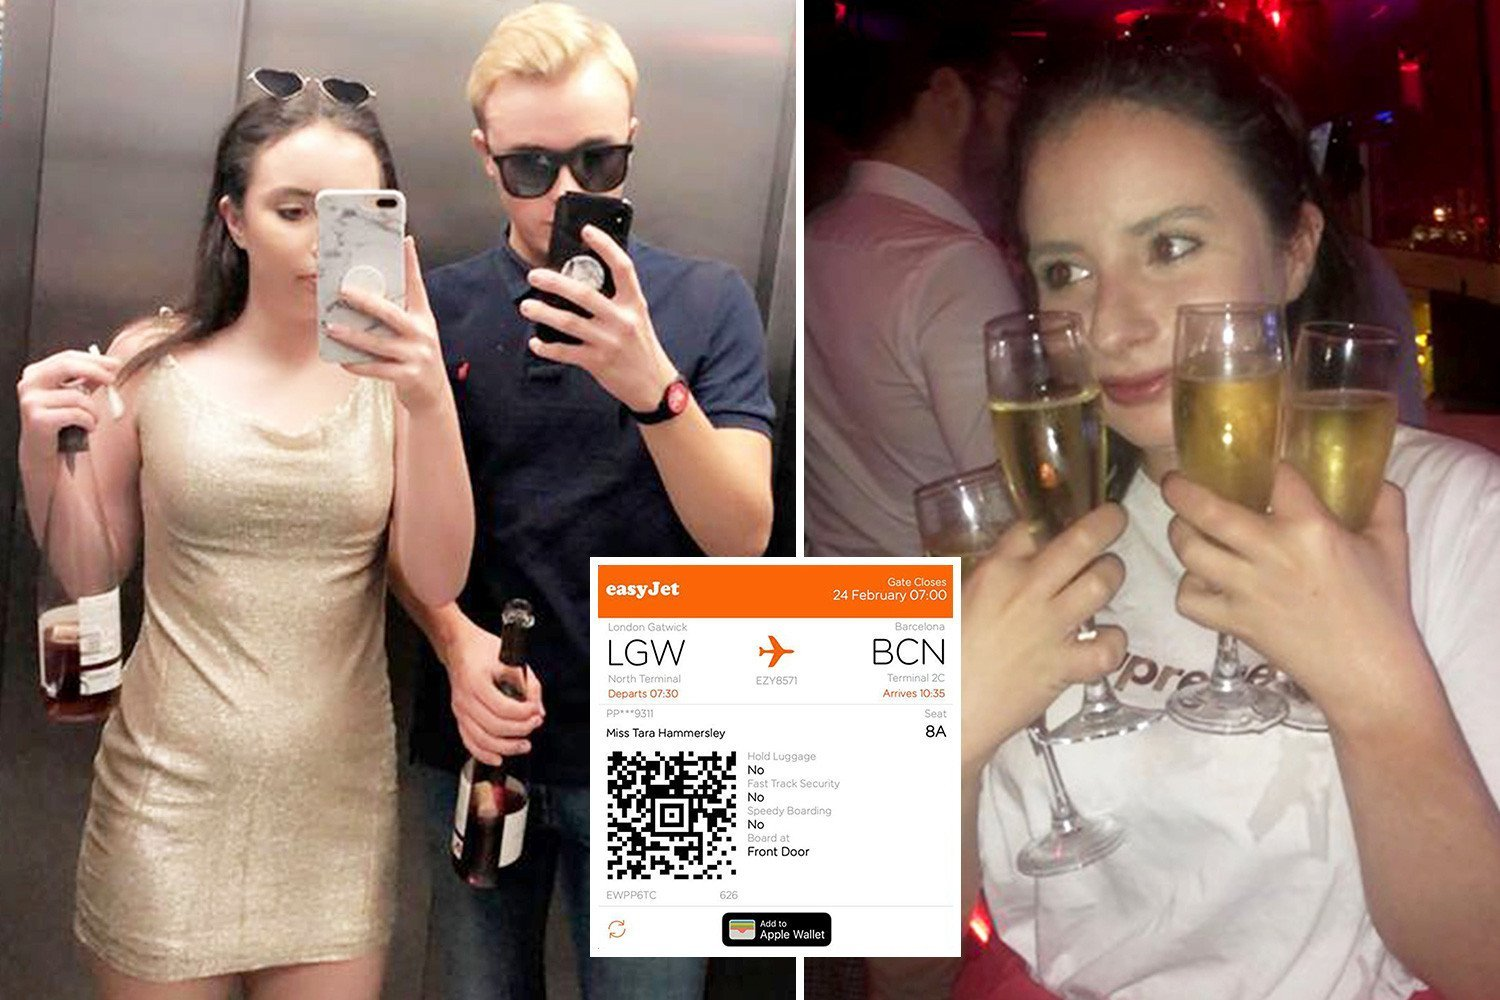 Teen revellers claim they ended up in Barcelona after Sussex night out got out of hand